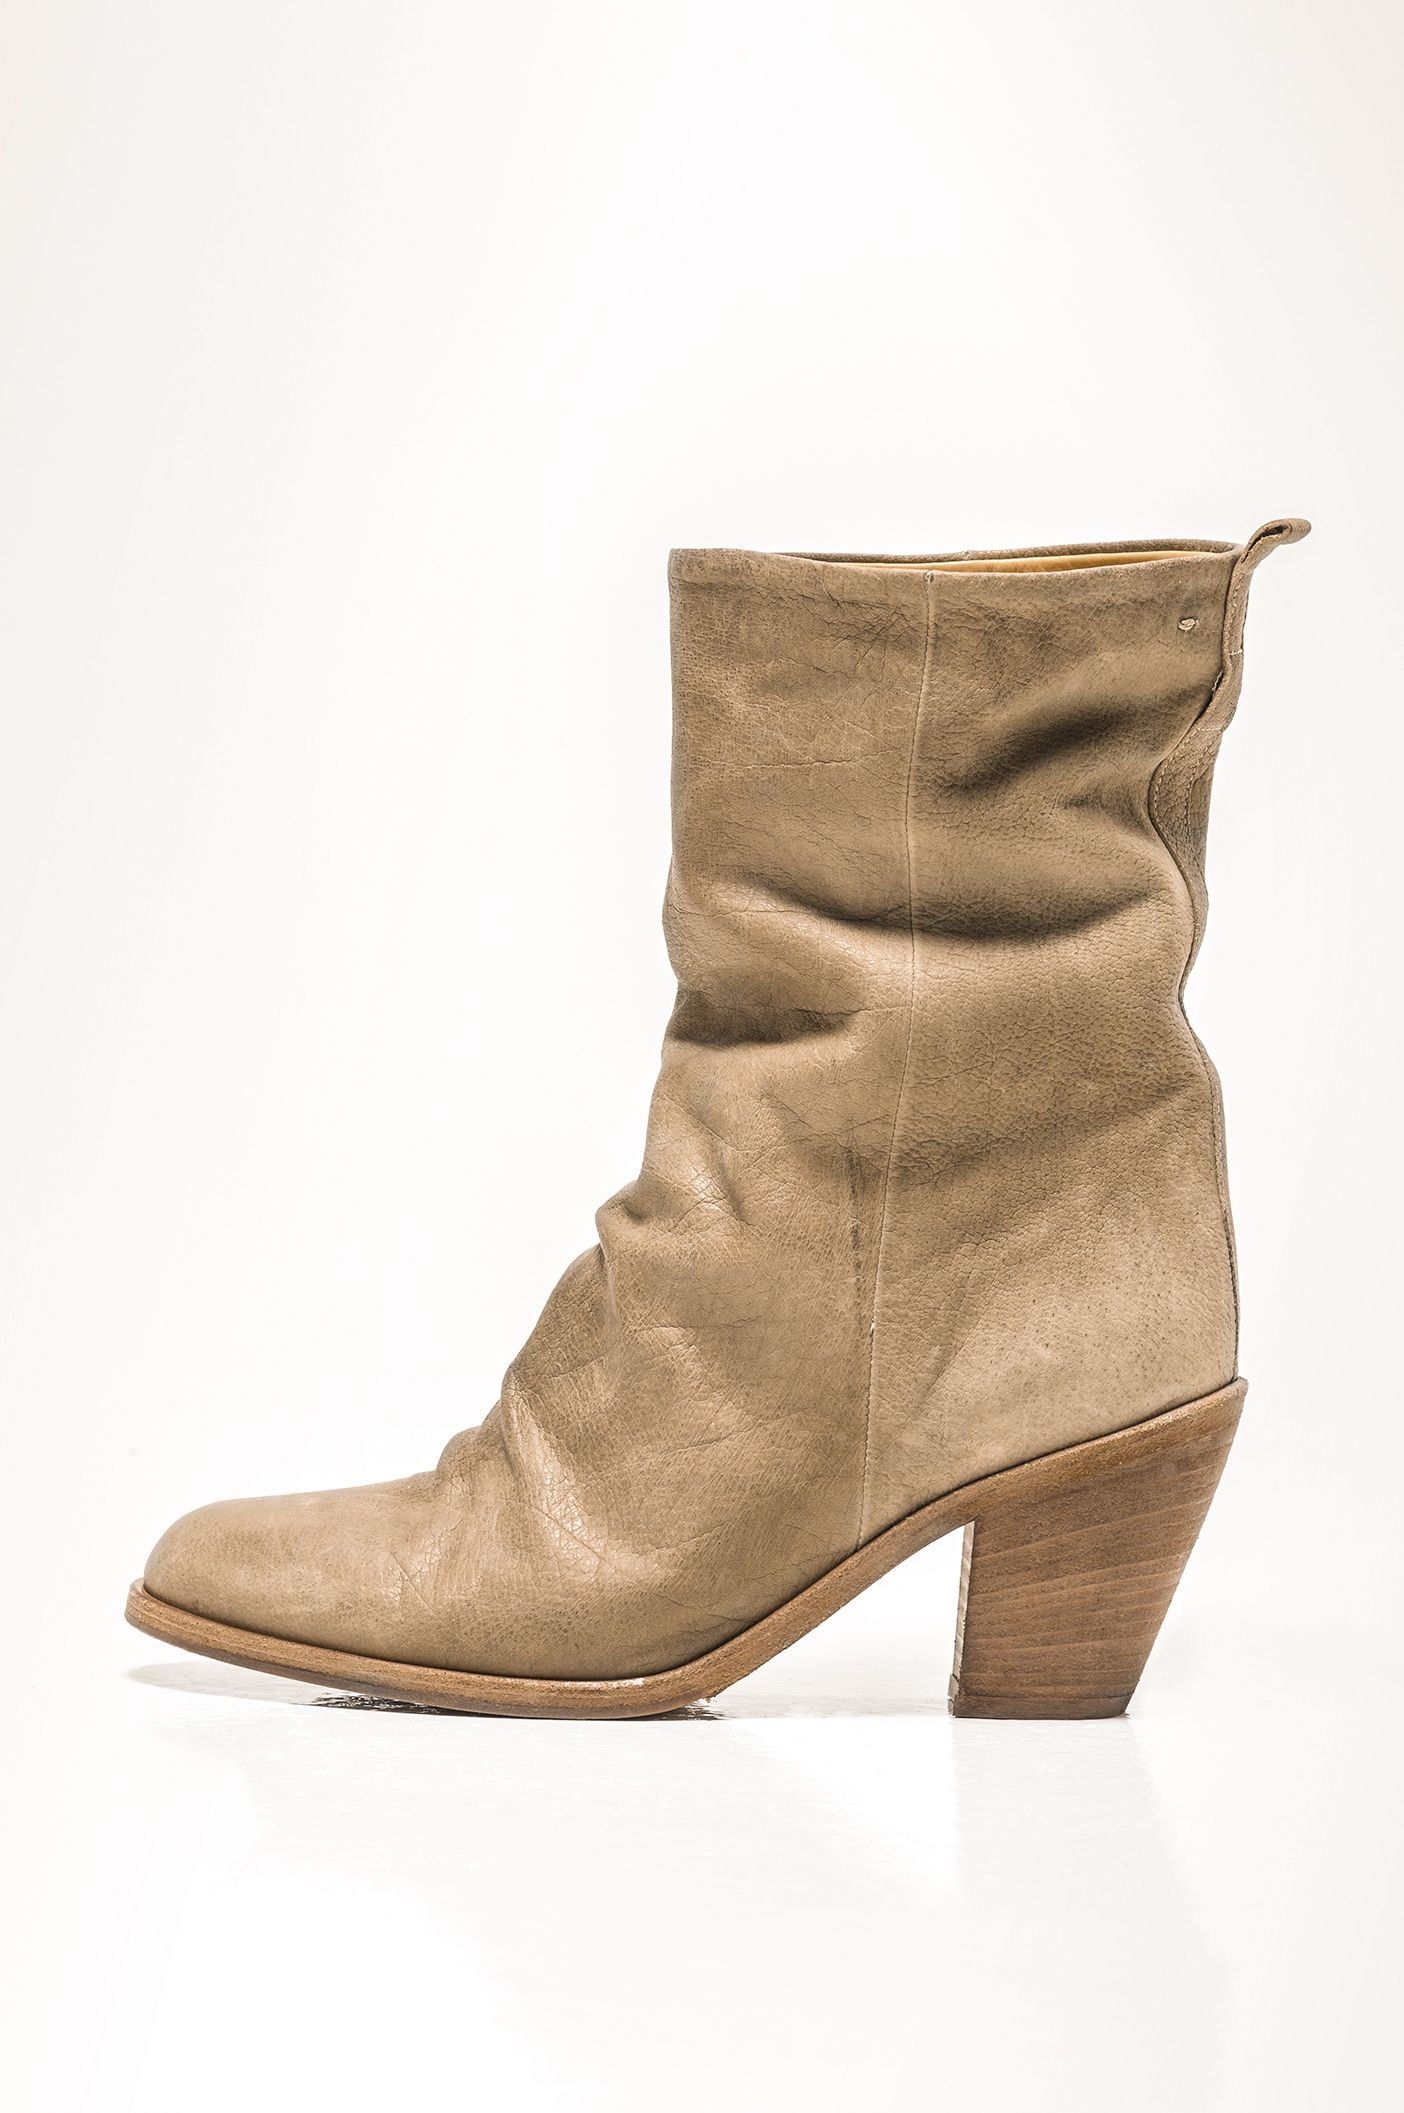 SYDNEY › Stiefel ›  HUMANOID WEBSHOP  ›  clothings.   Pinterest   Stiefel ... 039d83